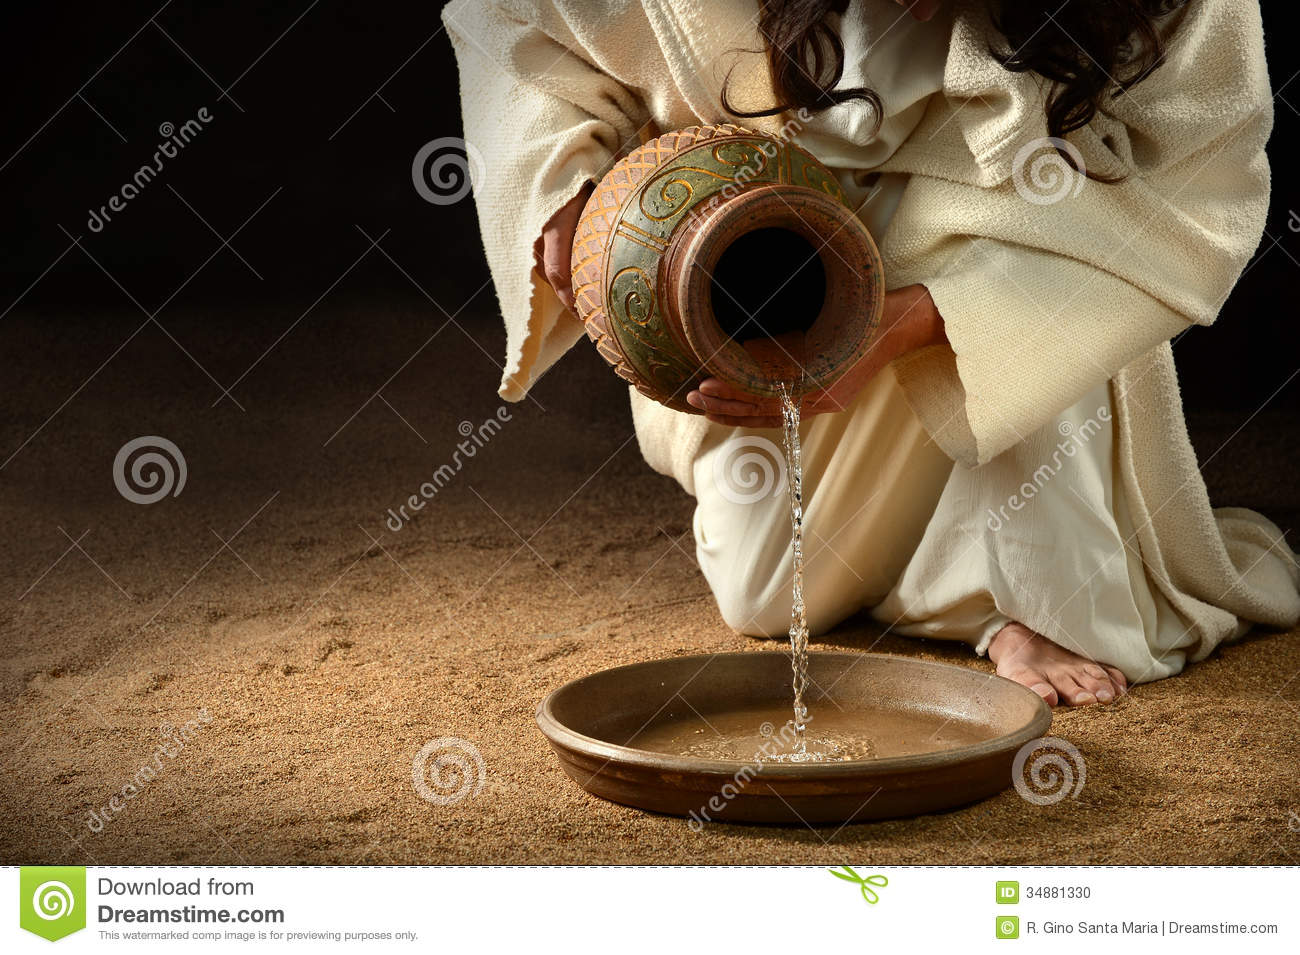 Jesus Pouring Water in Pan